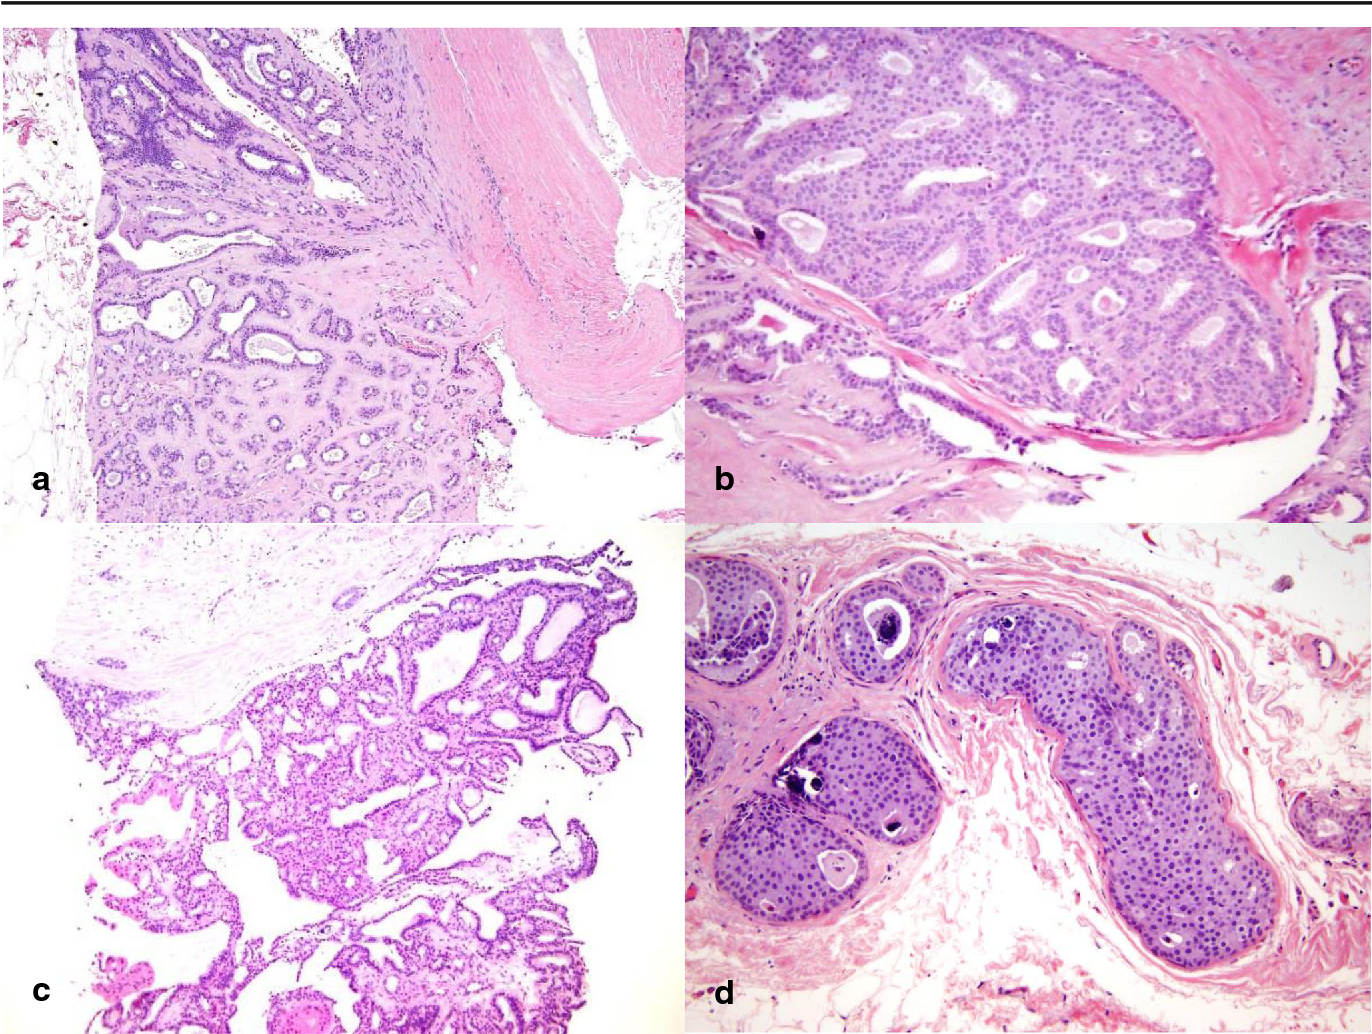 intraductal papilloma carcinoma in situ)